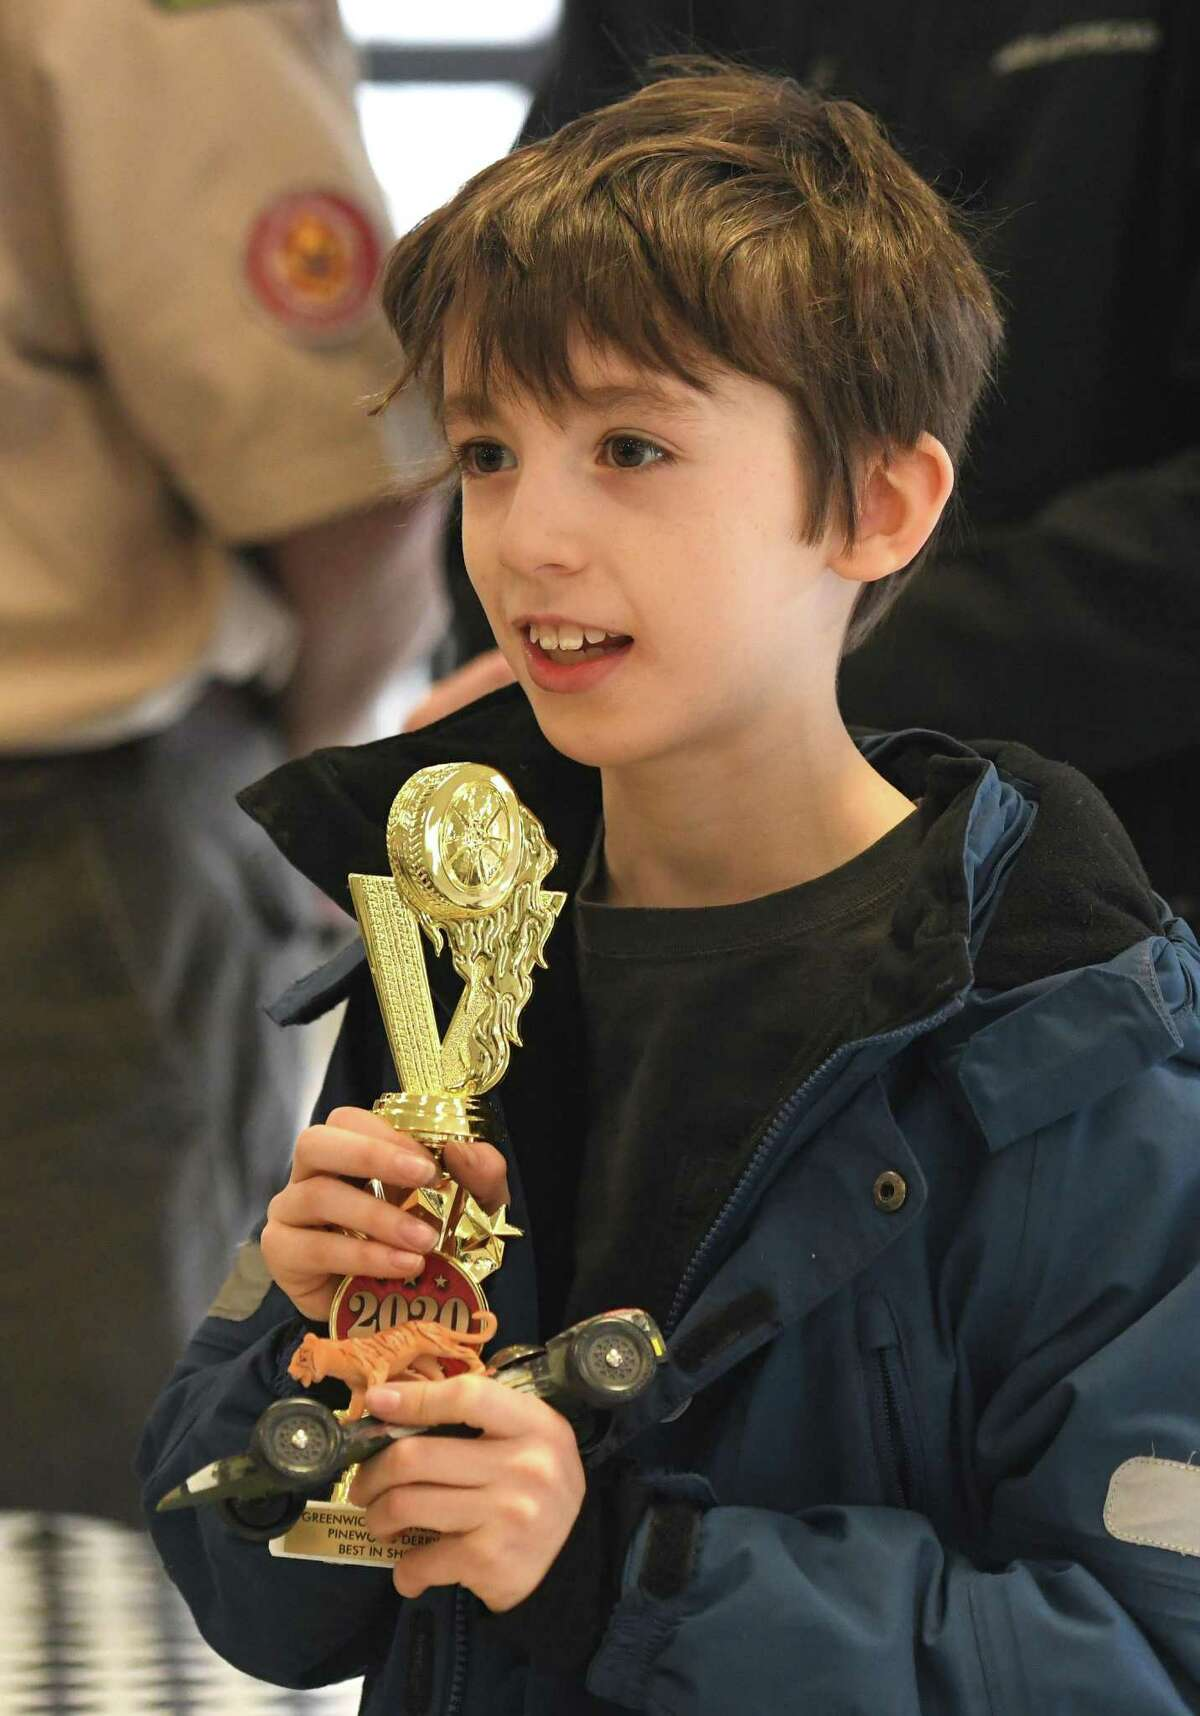 Photos from the Greenwich Boy Scouts Pinewood Derby Championship at Miller Motorcars showroom in Greenwich, Conn. Sunday, March 8, 2020. Scouts built their cars by hand according to specific guidelines either at home or during the Pinewood Derby workshop in January. 21 competitors battled as cars' times were digitally tracked in multiple heats, allowing the fastest cars to advance to a championship bracket of eight. James Henry won first place overall and Jacob Tirana won Best in Show for his car design.